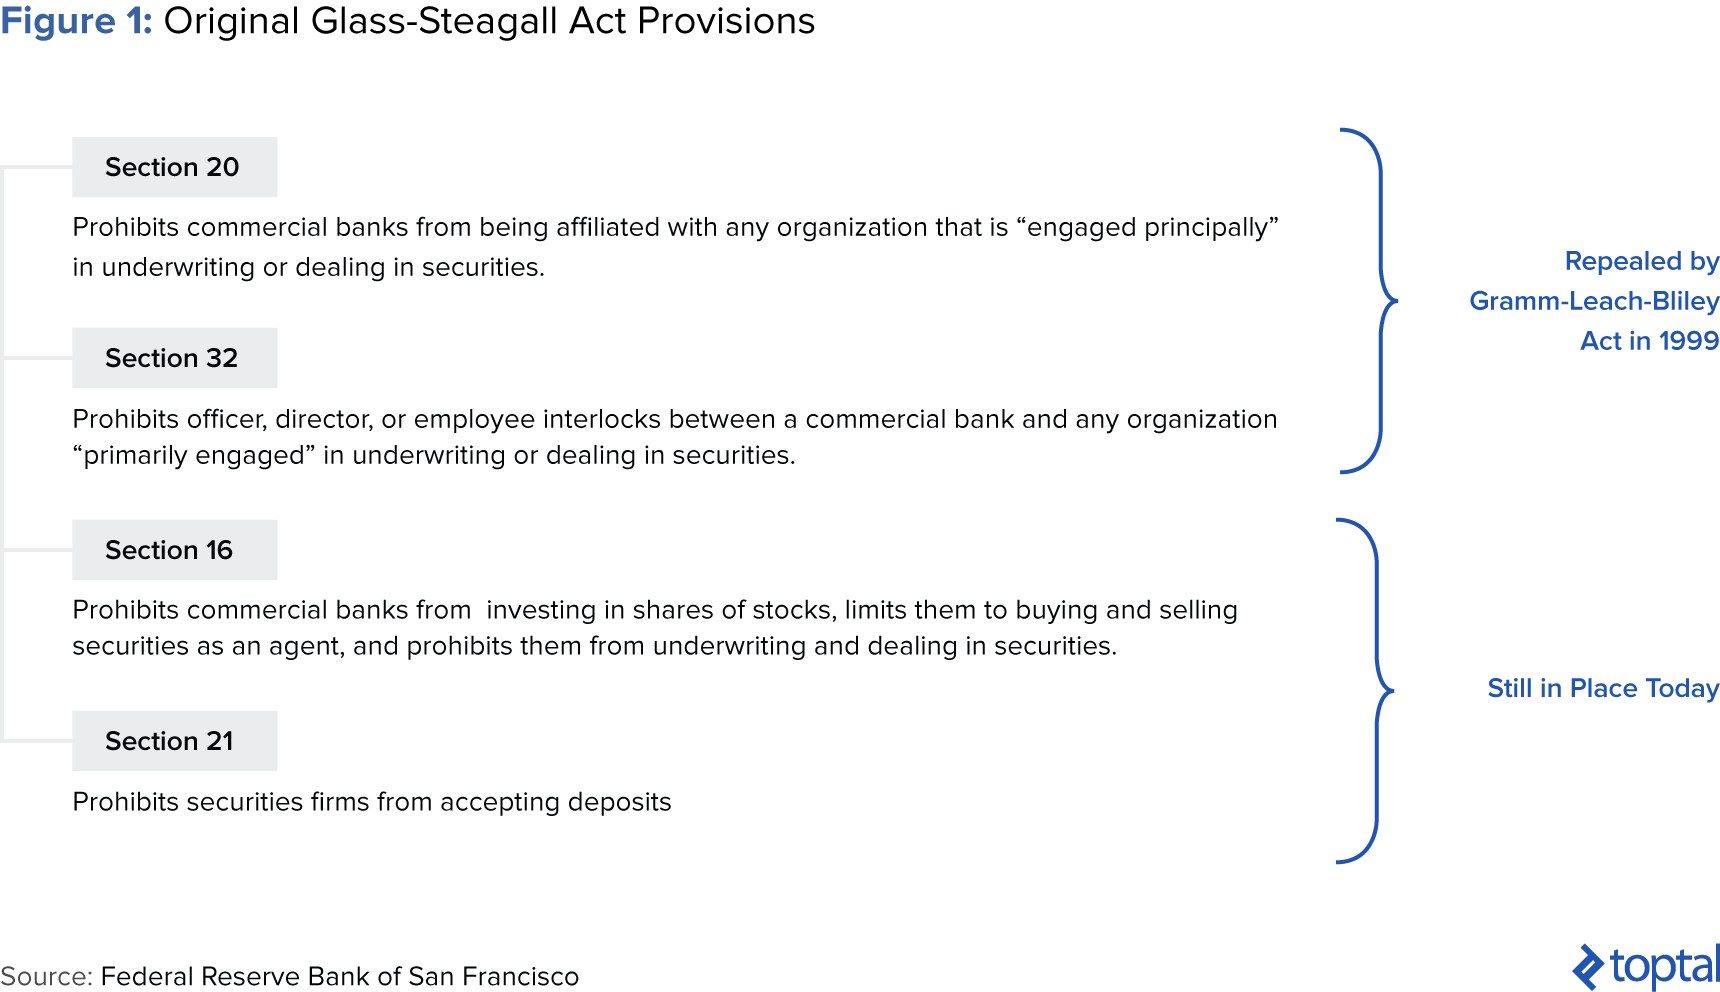 Figura 1: Disposiciones Originales de la Ley Glass-Steagall